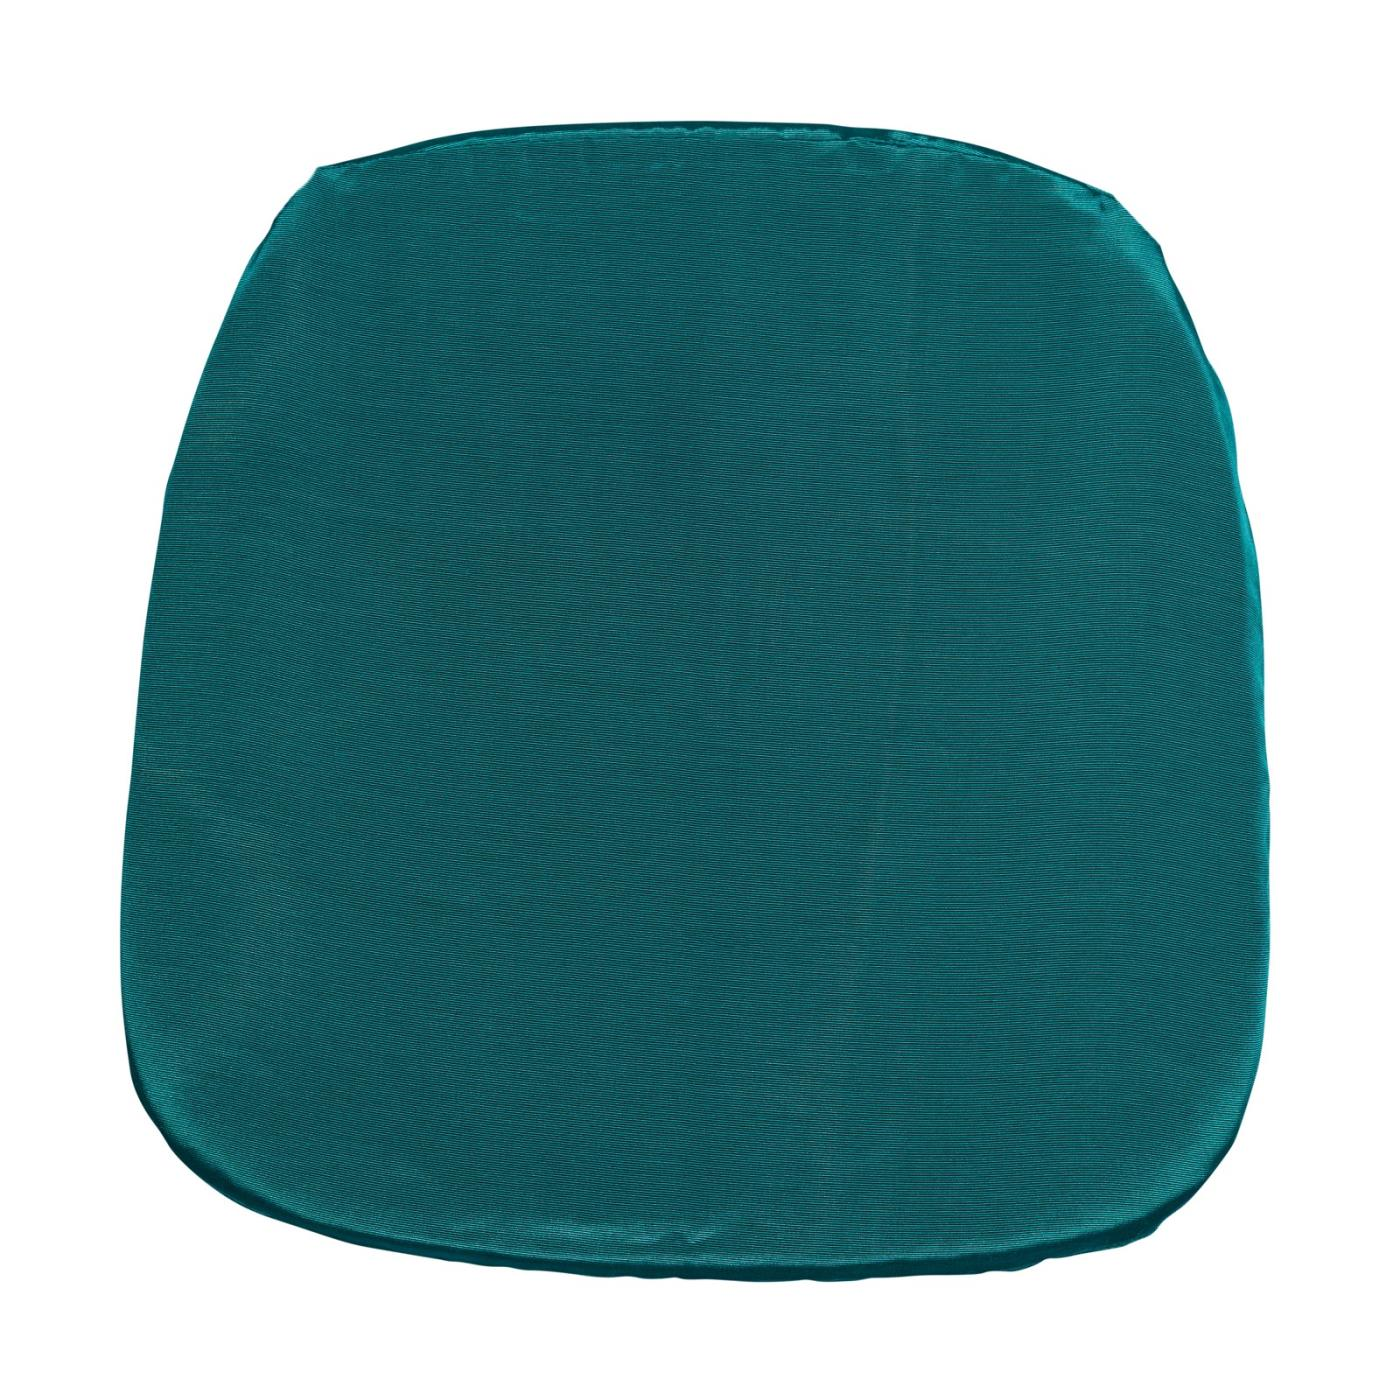 Bengaline Seat Cushion - Teal